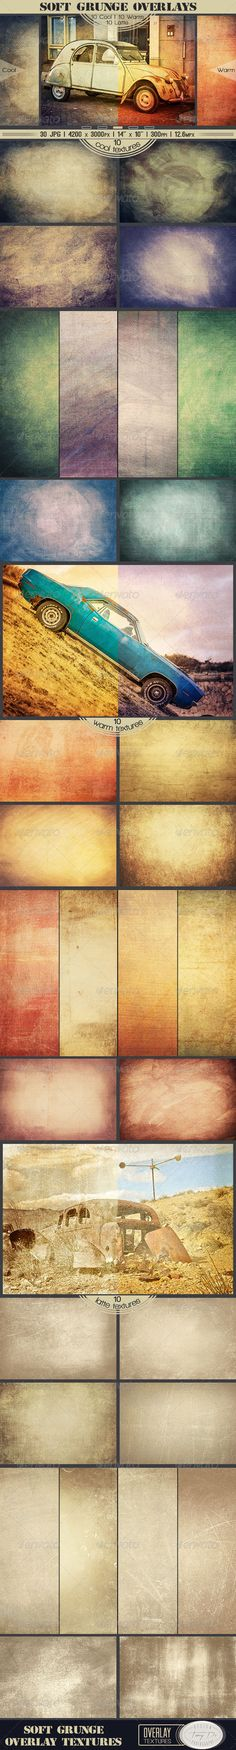 Soft Grunge Overlay Textures - Industrial / Grunge #Textures Download here: https://graphicriver.net/item/soft-grunge-overlay-textures/7489807?ref=alena994